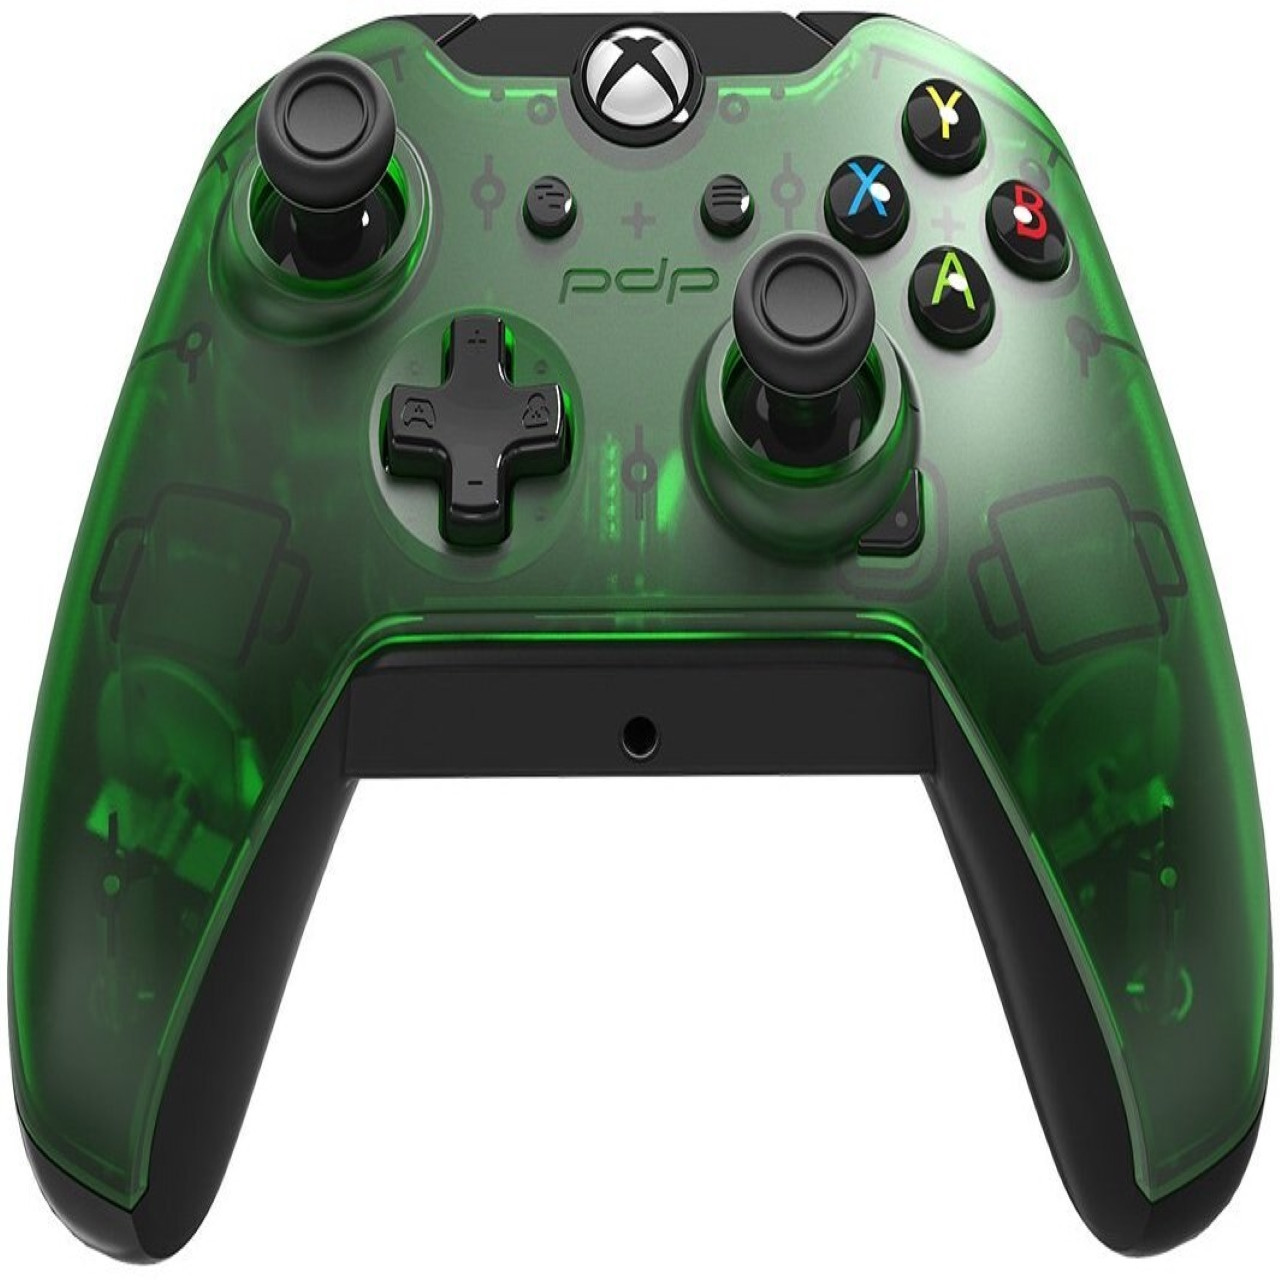 Microsoft Xbox ONE,PC Wired Controller PDP XO Green (провідний)